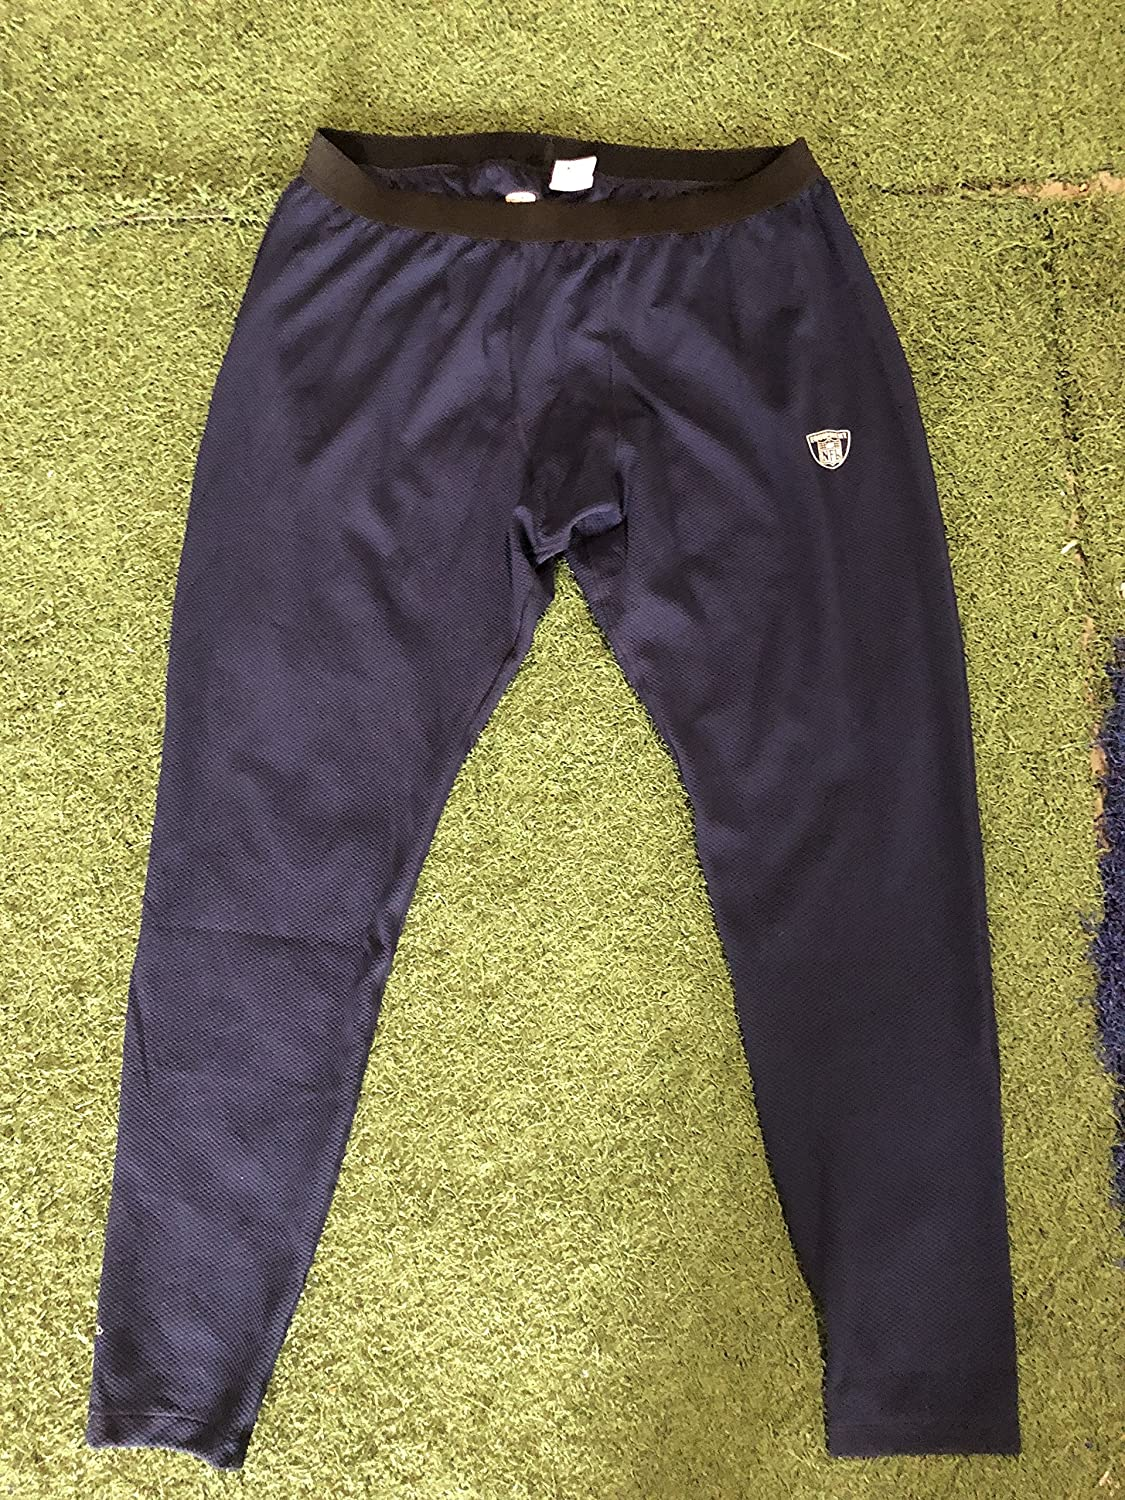 Dallas Cowboys Game Used Reebok On-Field Sweat Pants-4XL Navy Blue Game Issued Equipment